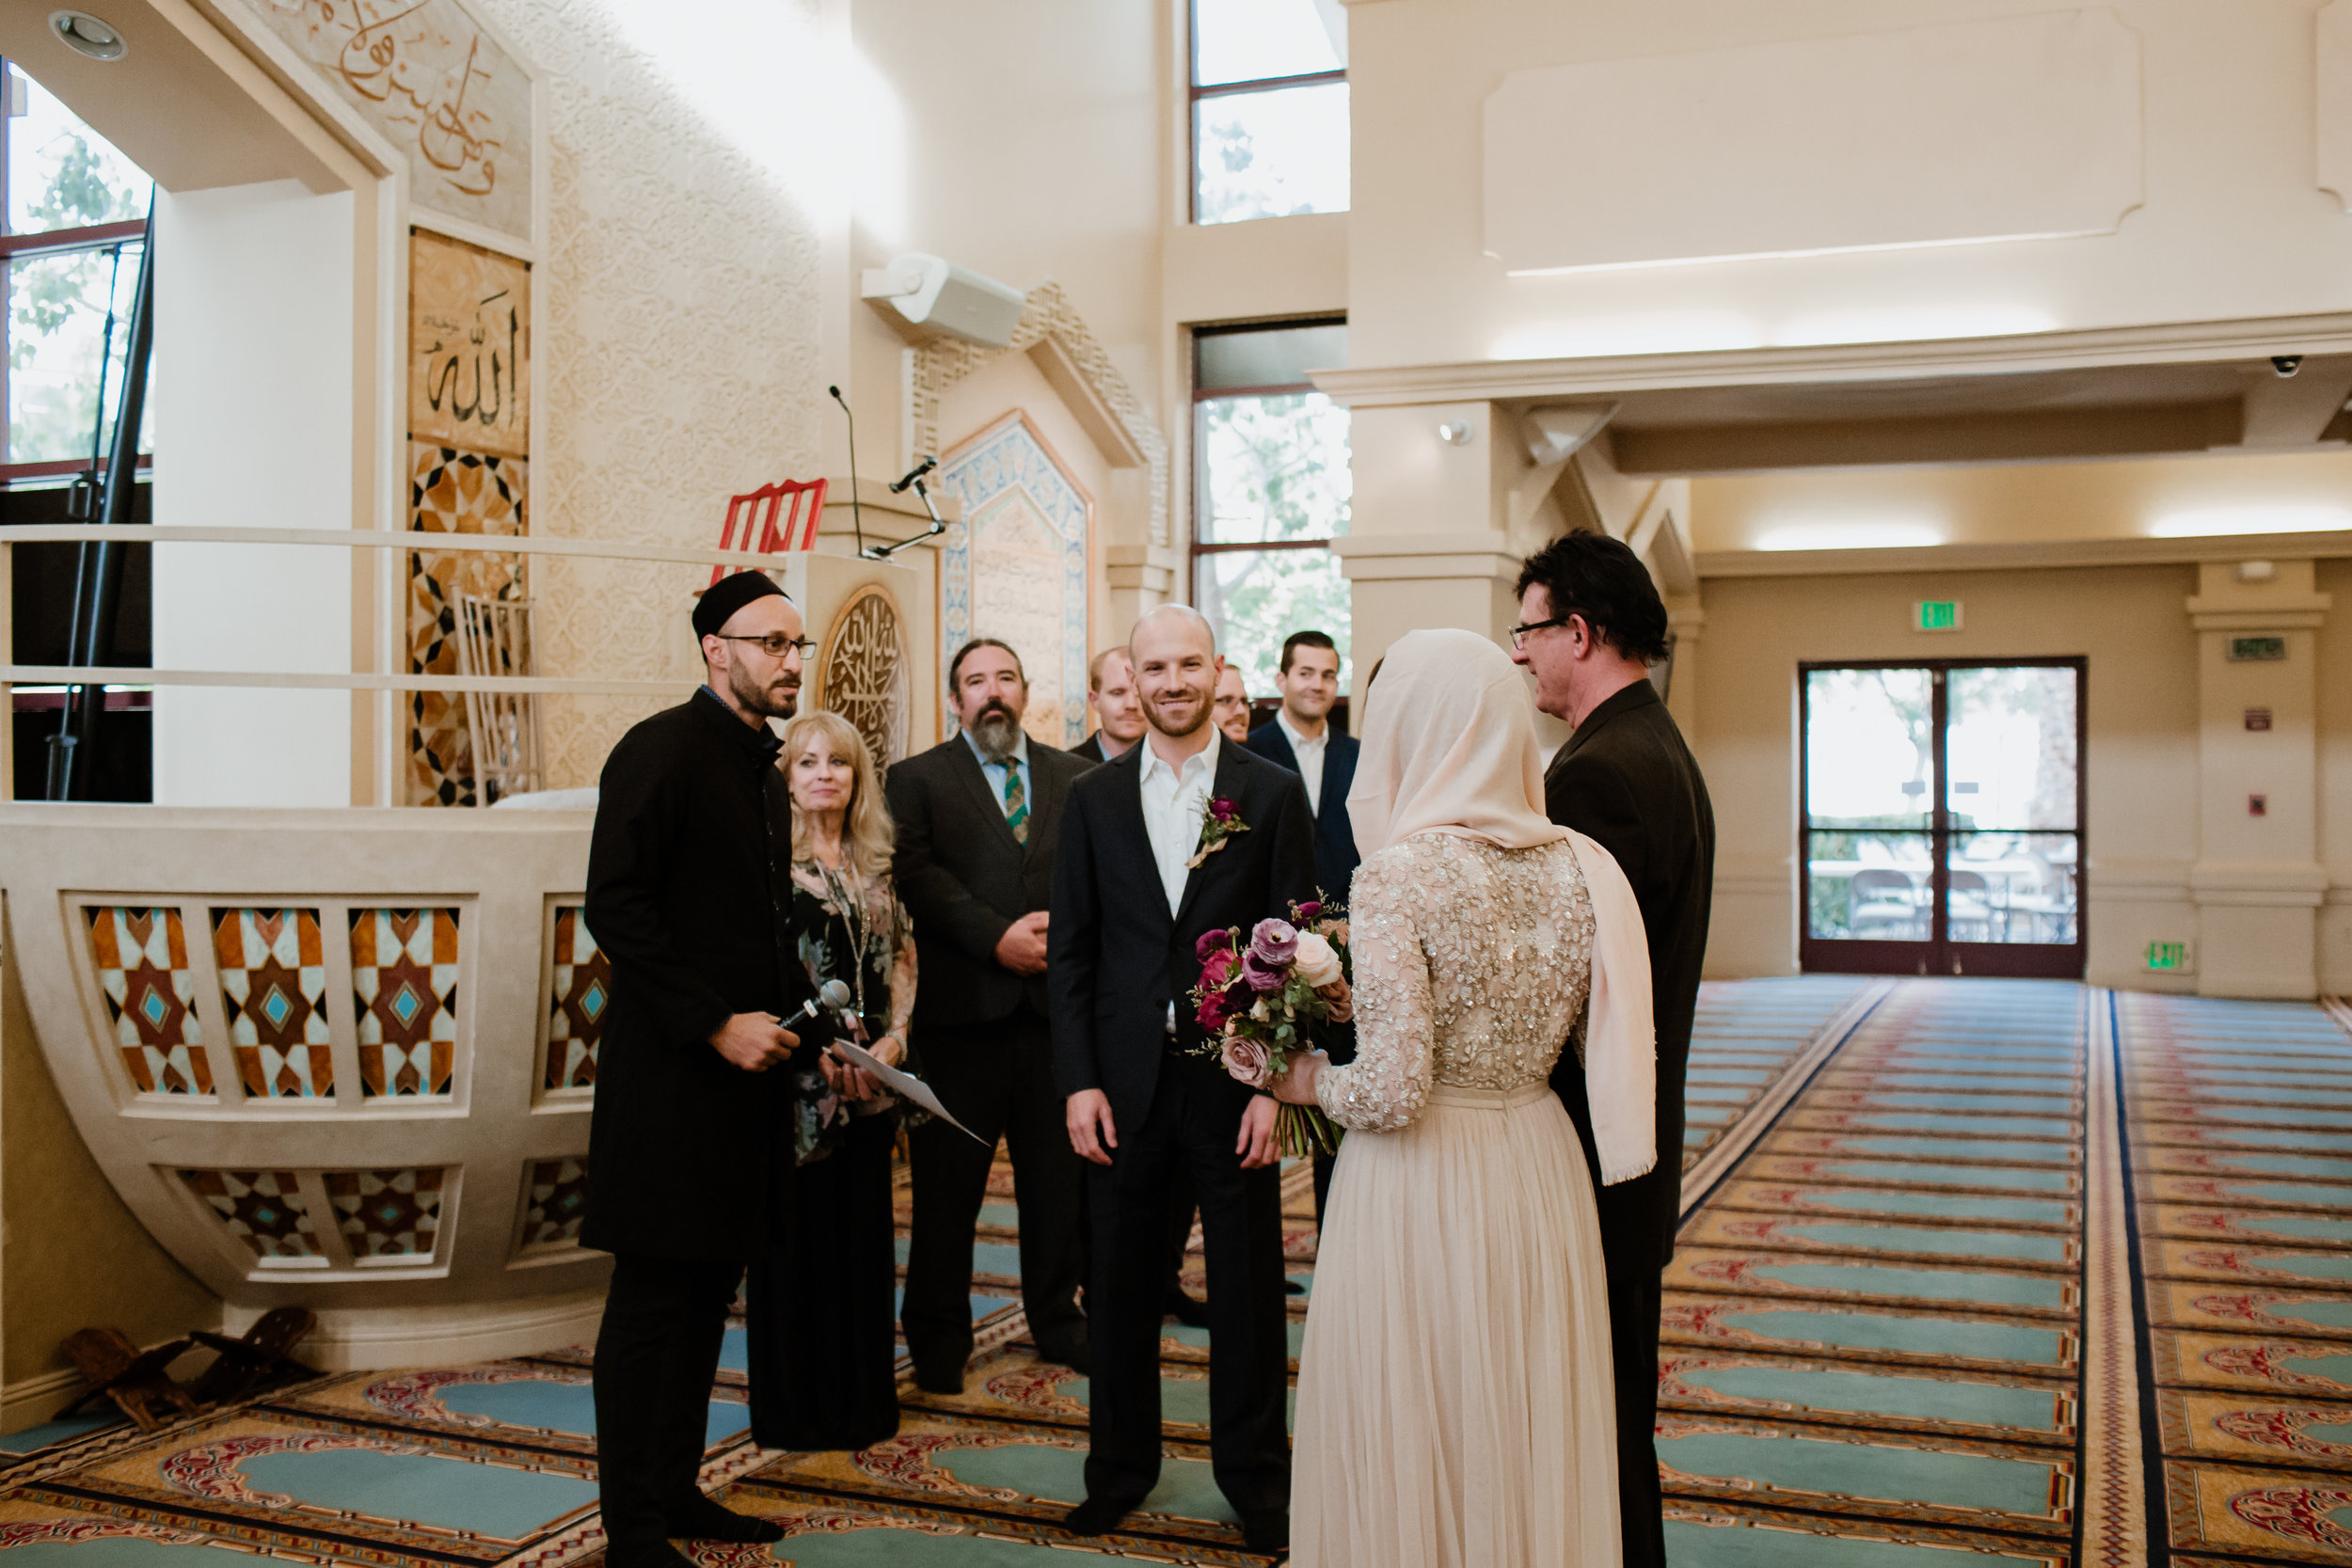 Caydin and Garrett Intimate wedding in Costa Mesa Orange County - Eve Rox Photography-309.jpg